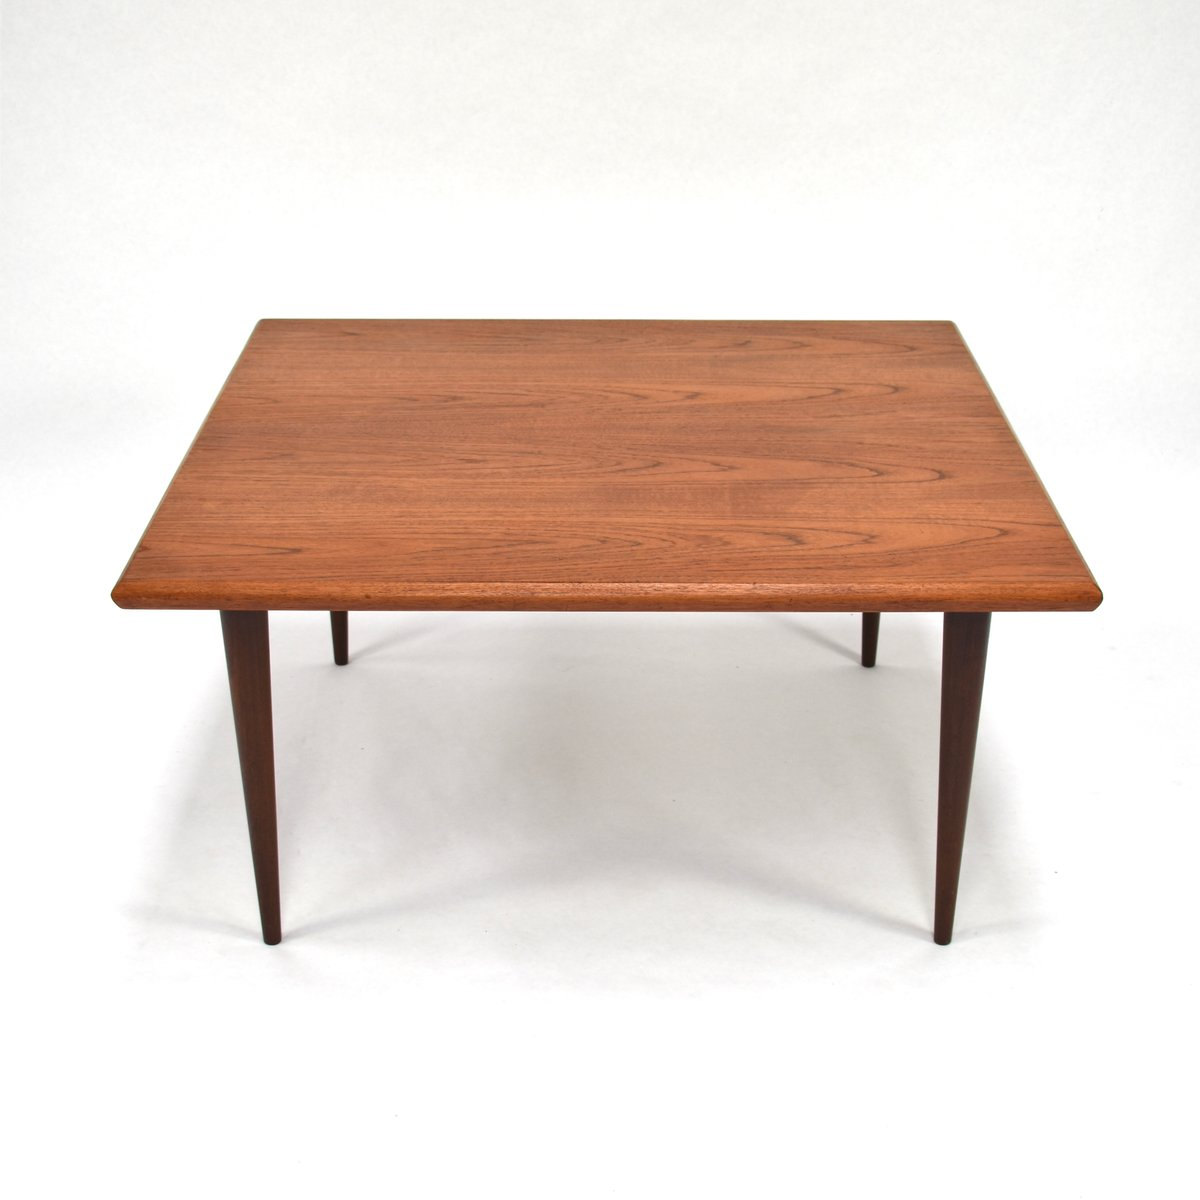 Danish Teak Coffee Table, 1950s for sale at Pamono